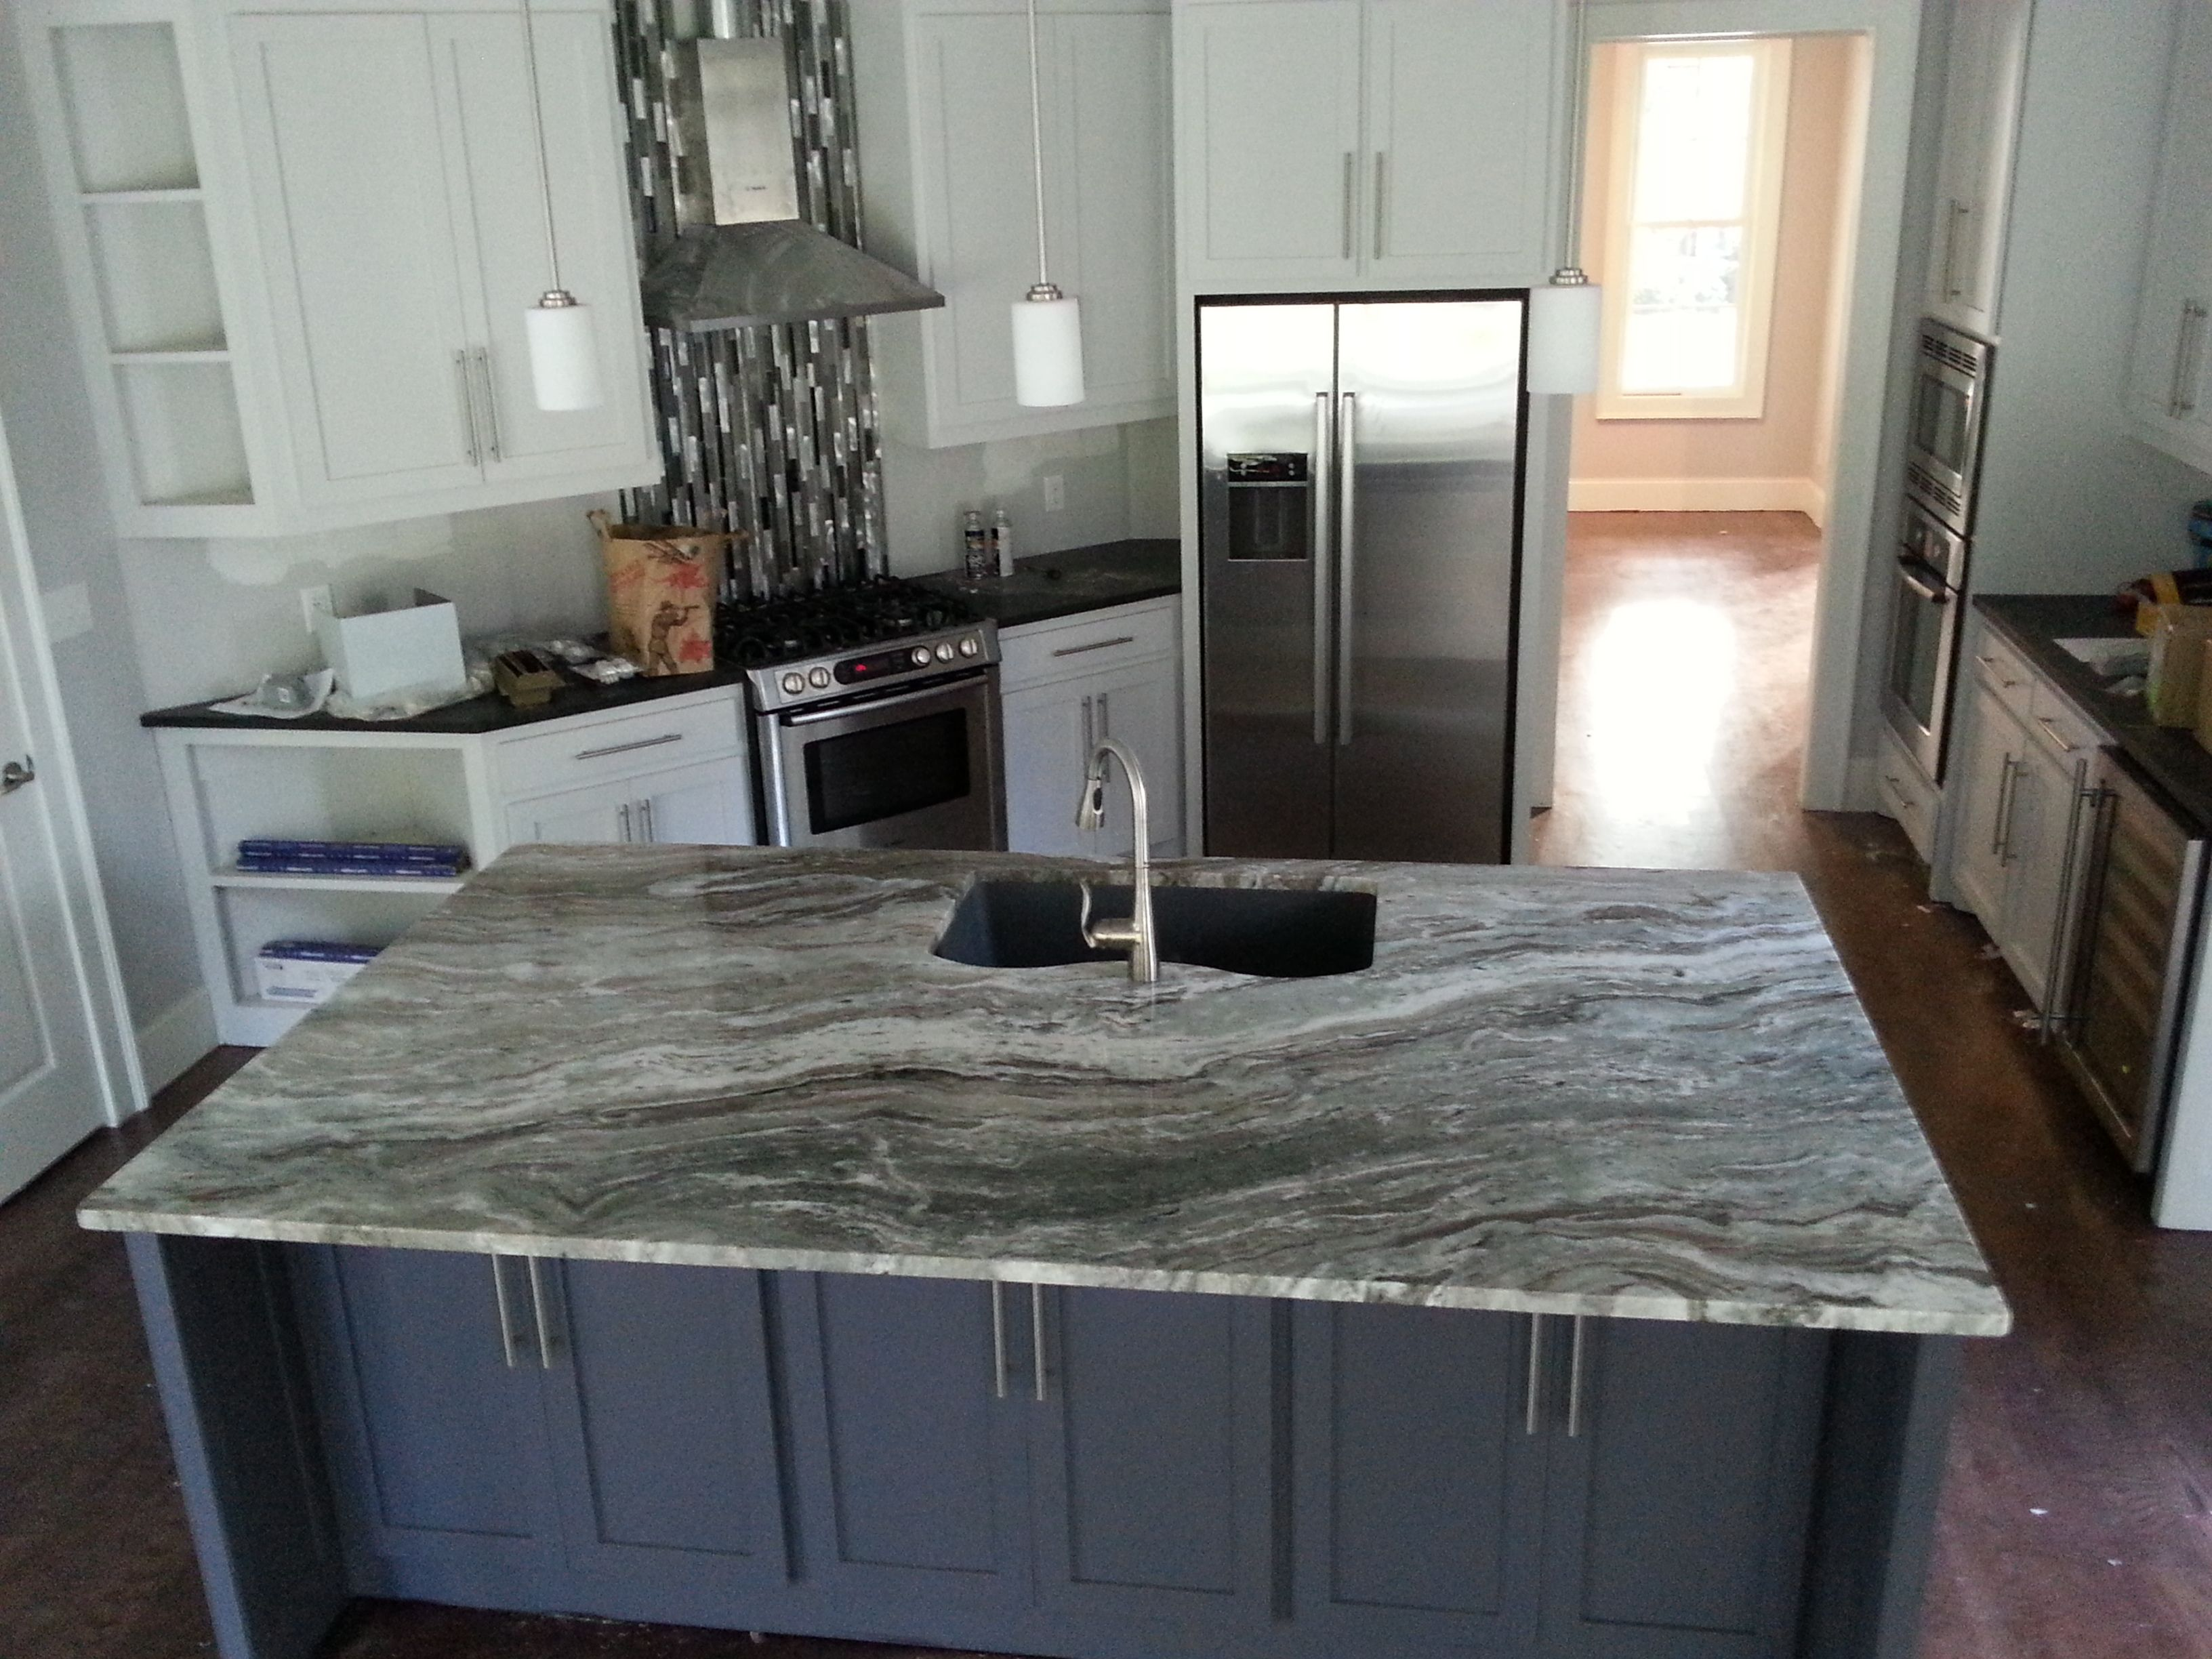 fantasy brown quartzite kitchen island countertop - Kitchen Island Countertop